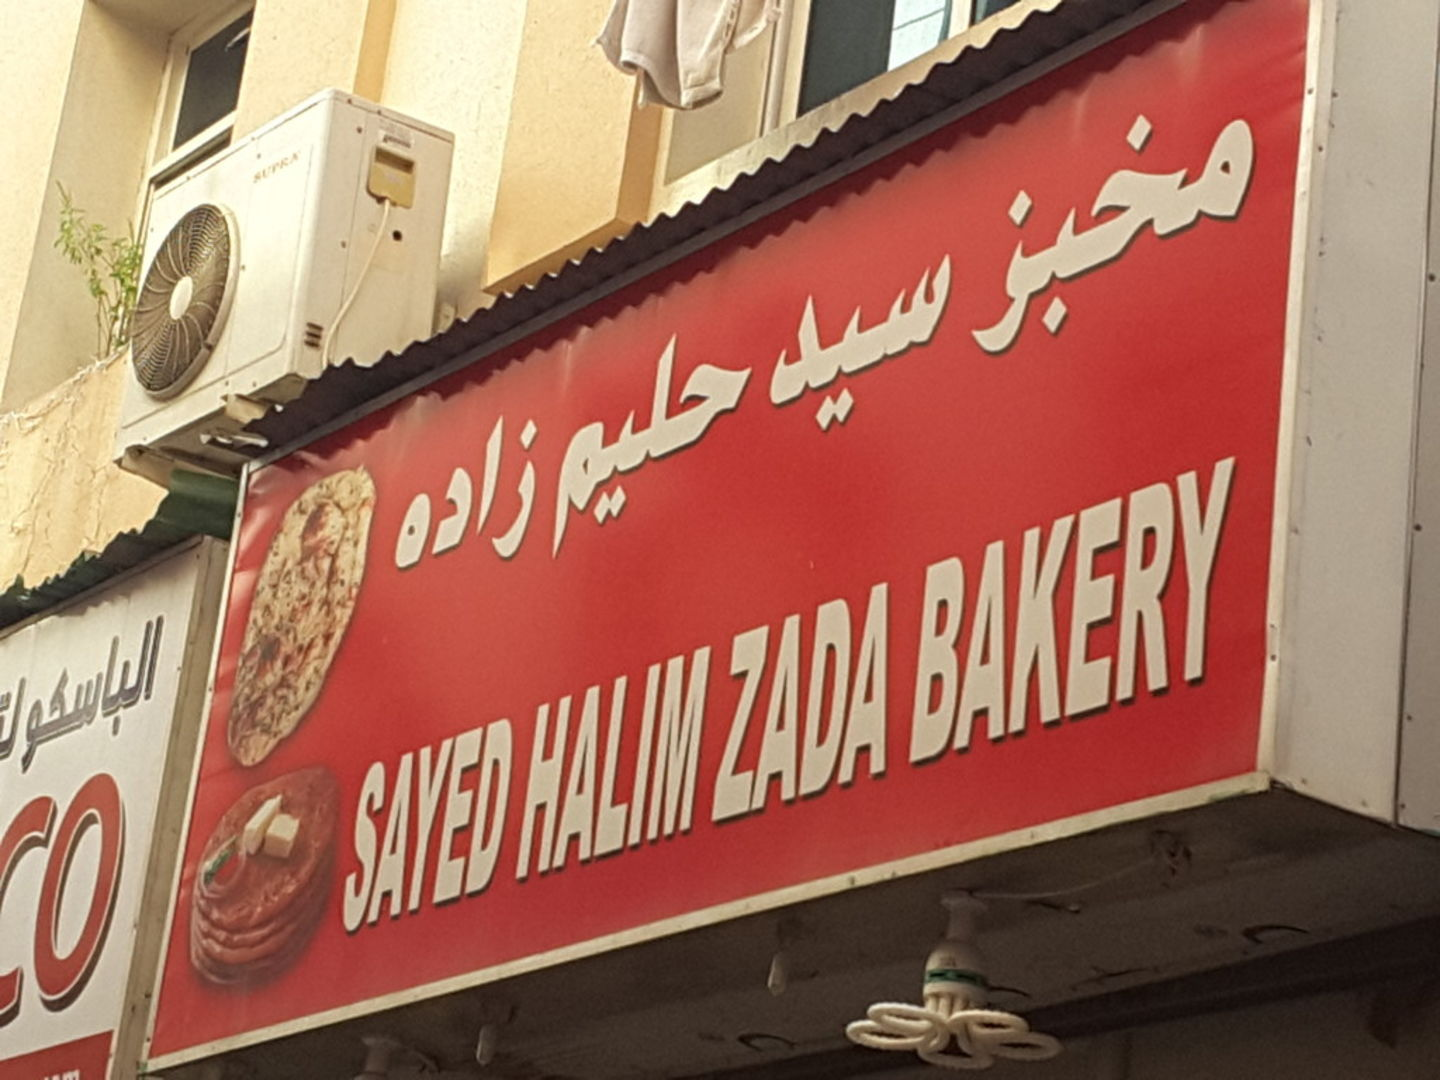 HiDubai-business-sayed-halim-zada-bakery-food-beverage-bakeries-desserts-sweets-meena-bazar-al-souq-al-kabeer-dubai-2